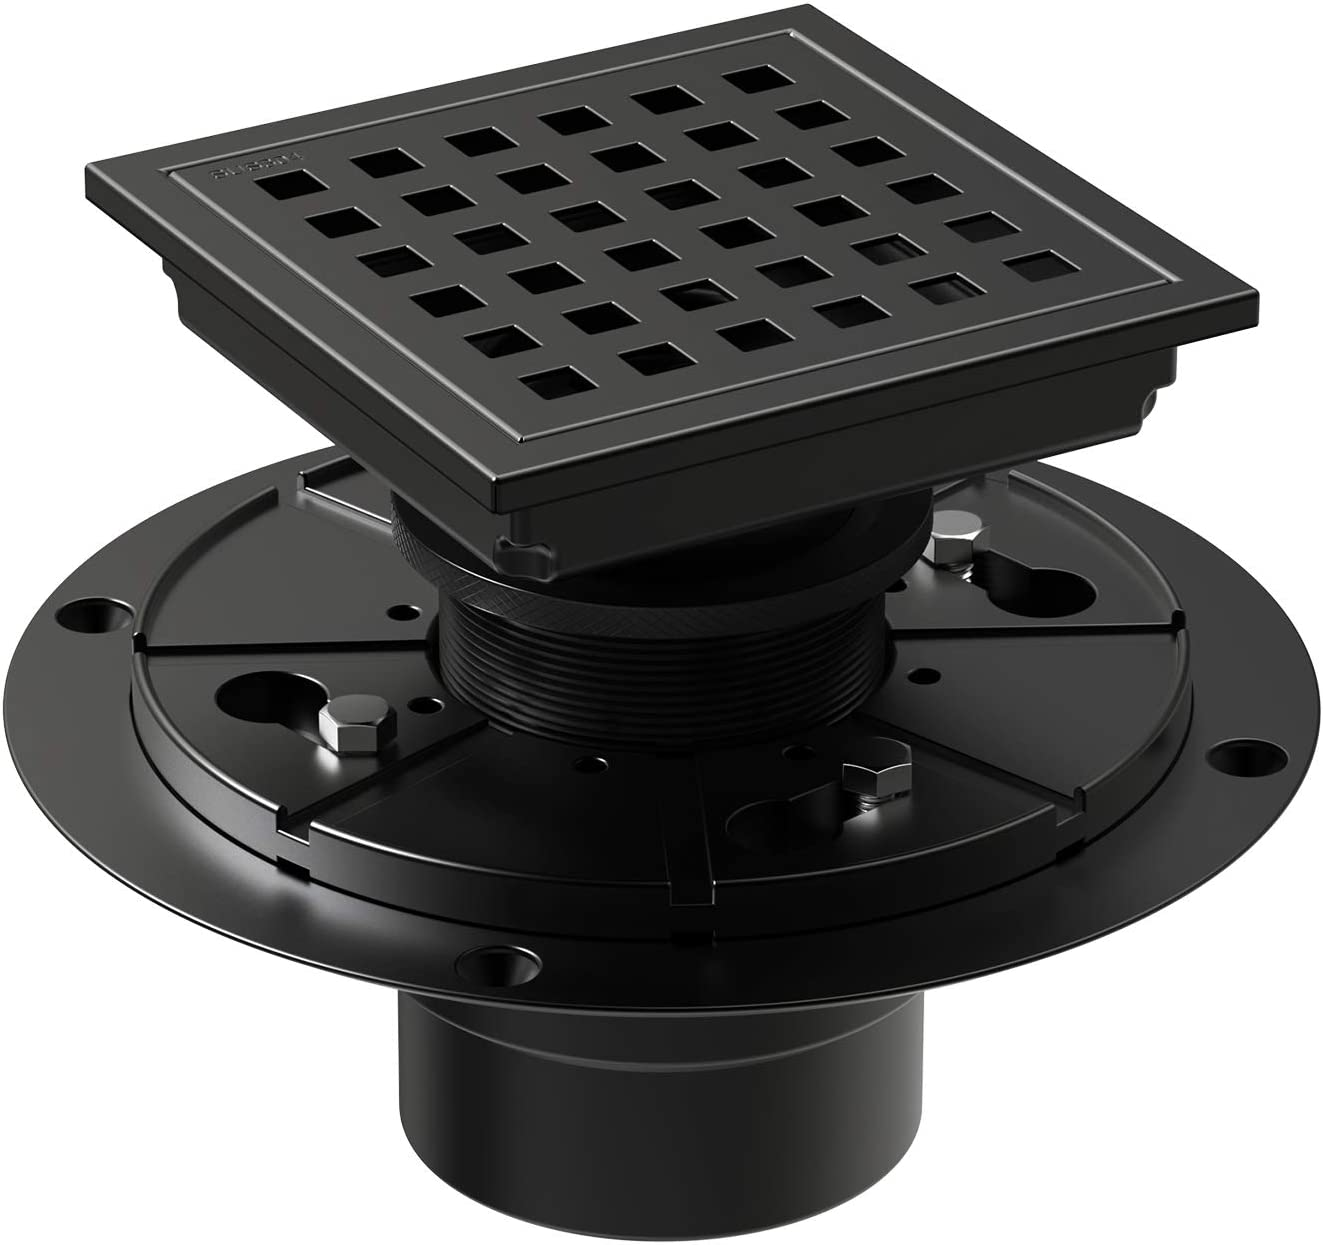 WEBANG 4 Inch Square Shower Floor Drain With Flange,Quadrato Pattern Grate Removable,Food-grade SUS 304 Stainless Steel,WATERMARK&CUPC Certified,Matte Black